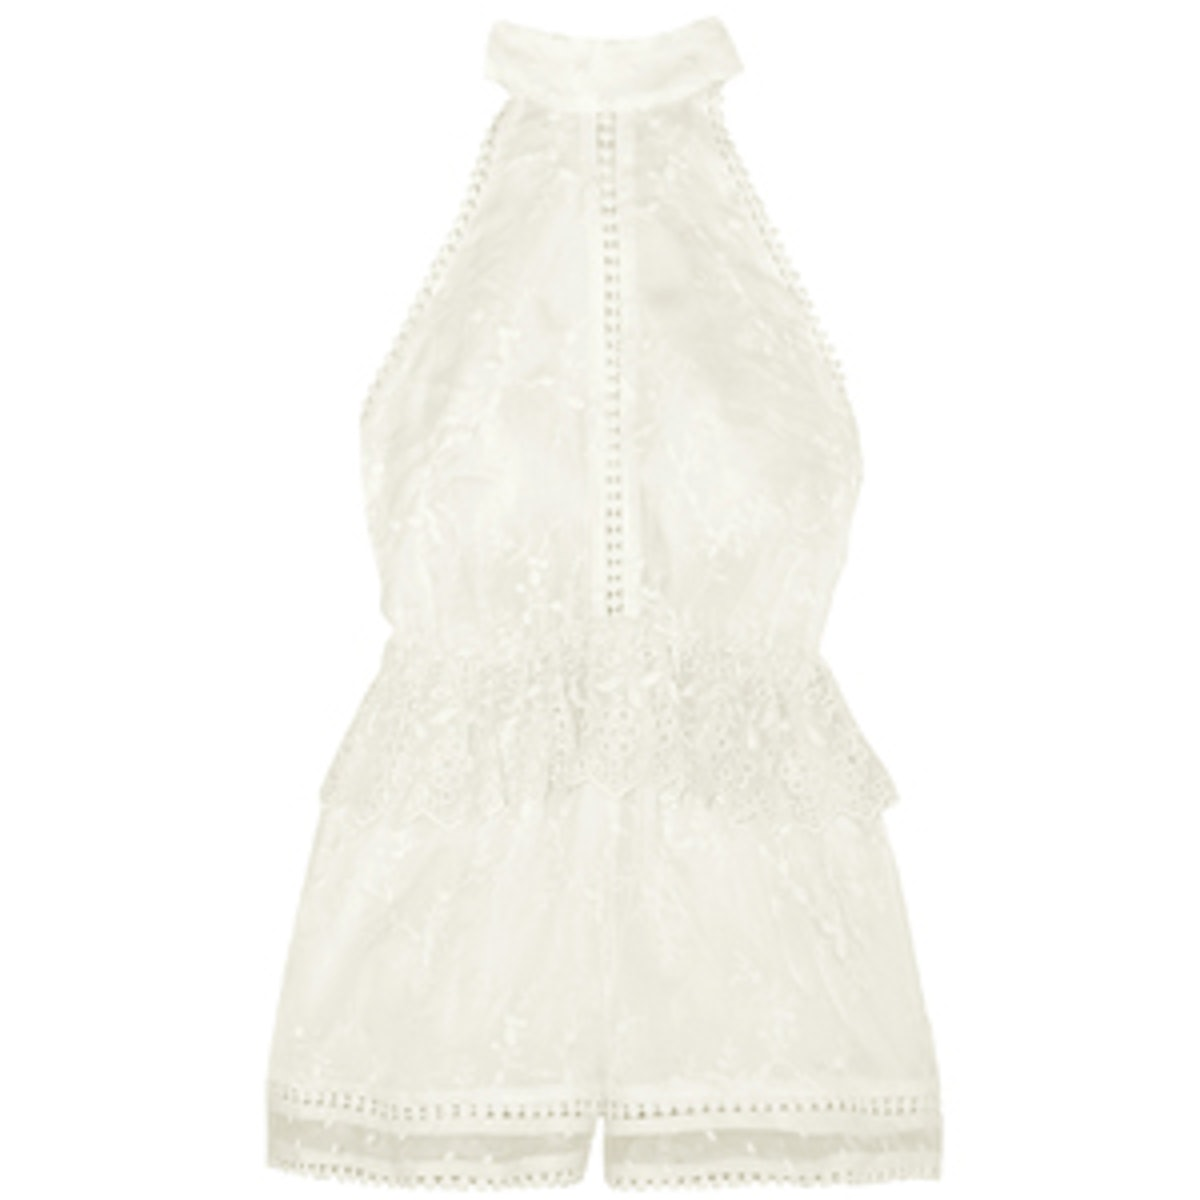 Admire Cherry Embroidered Silk Playsuit